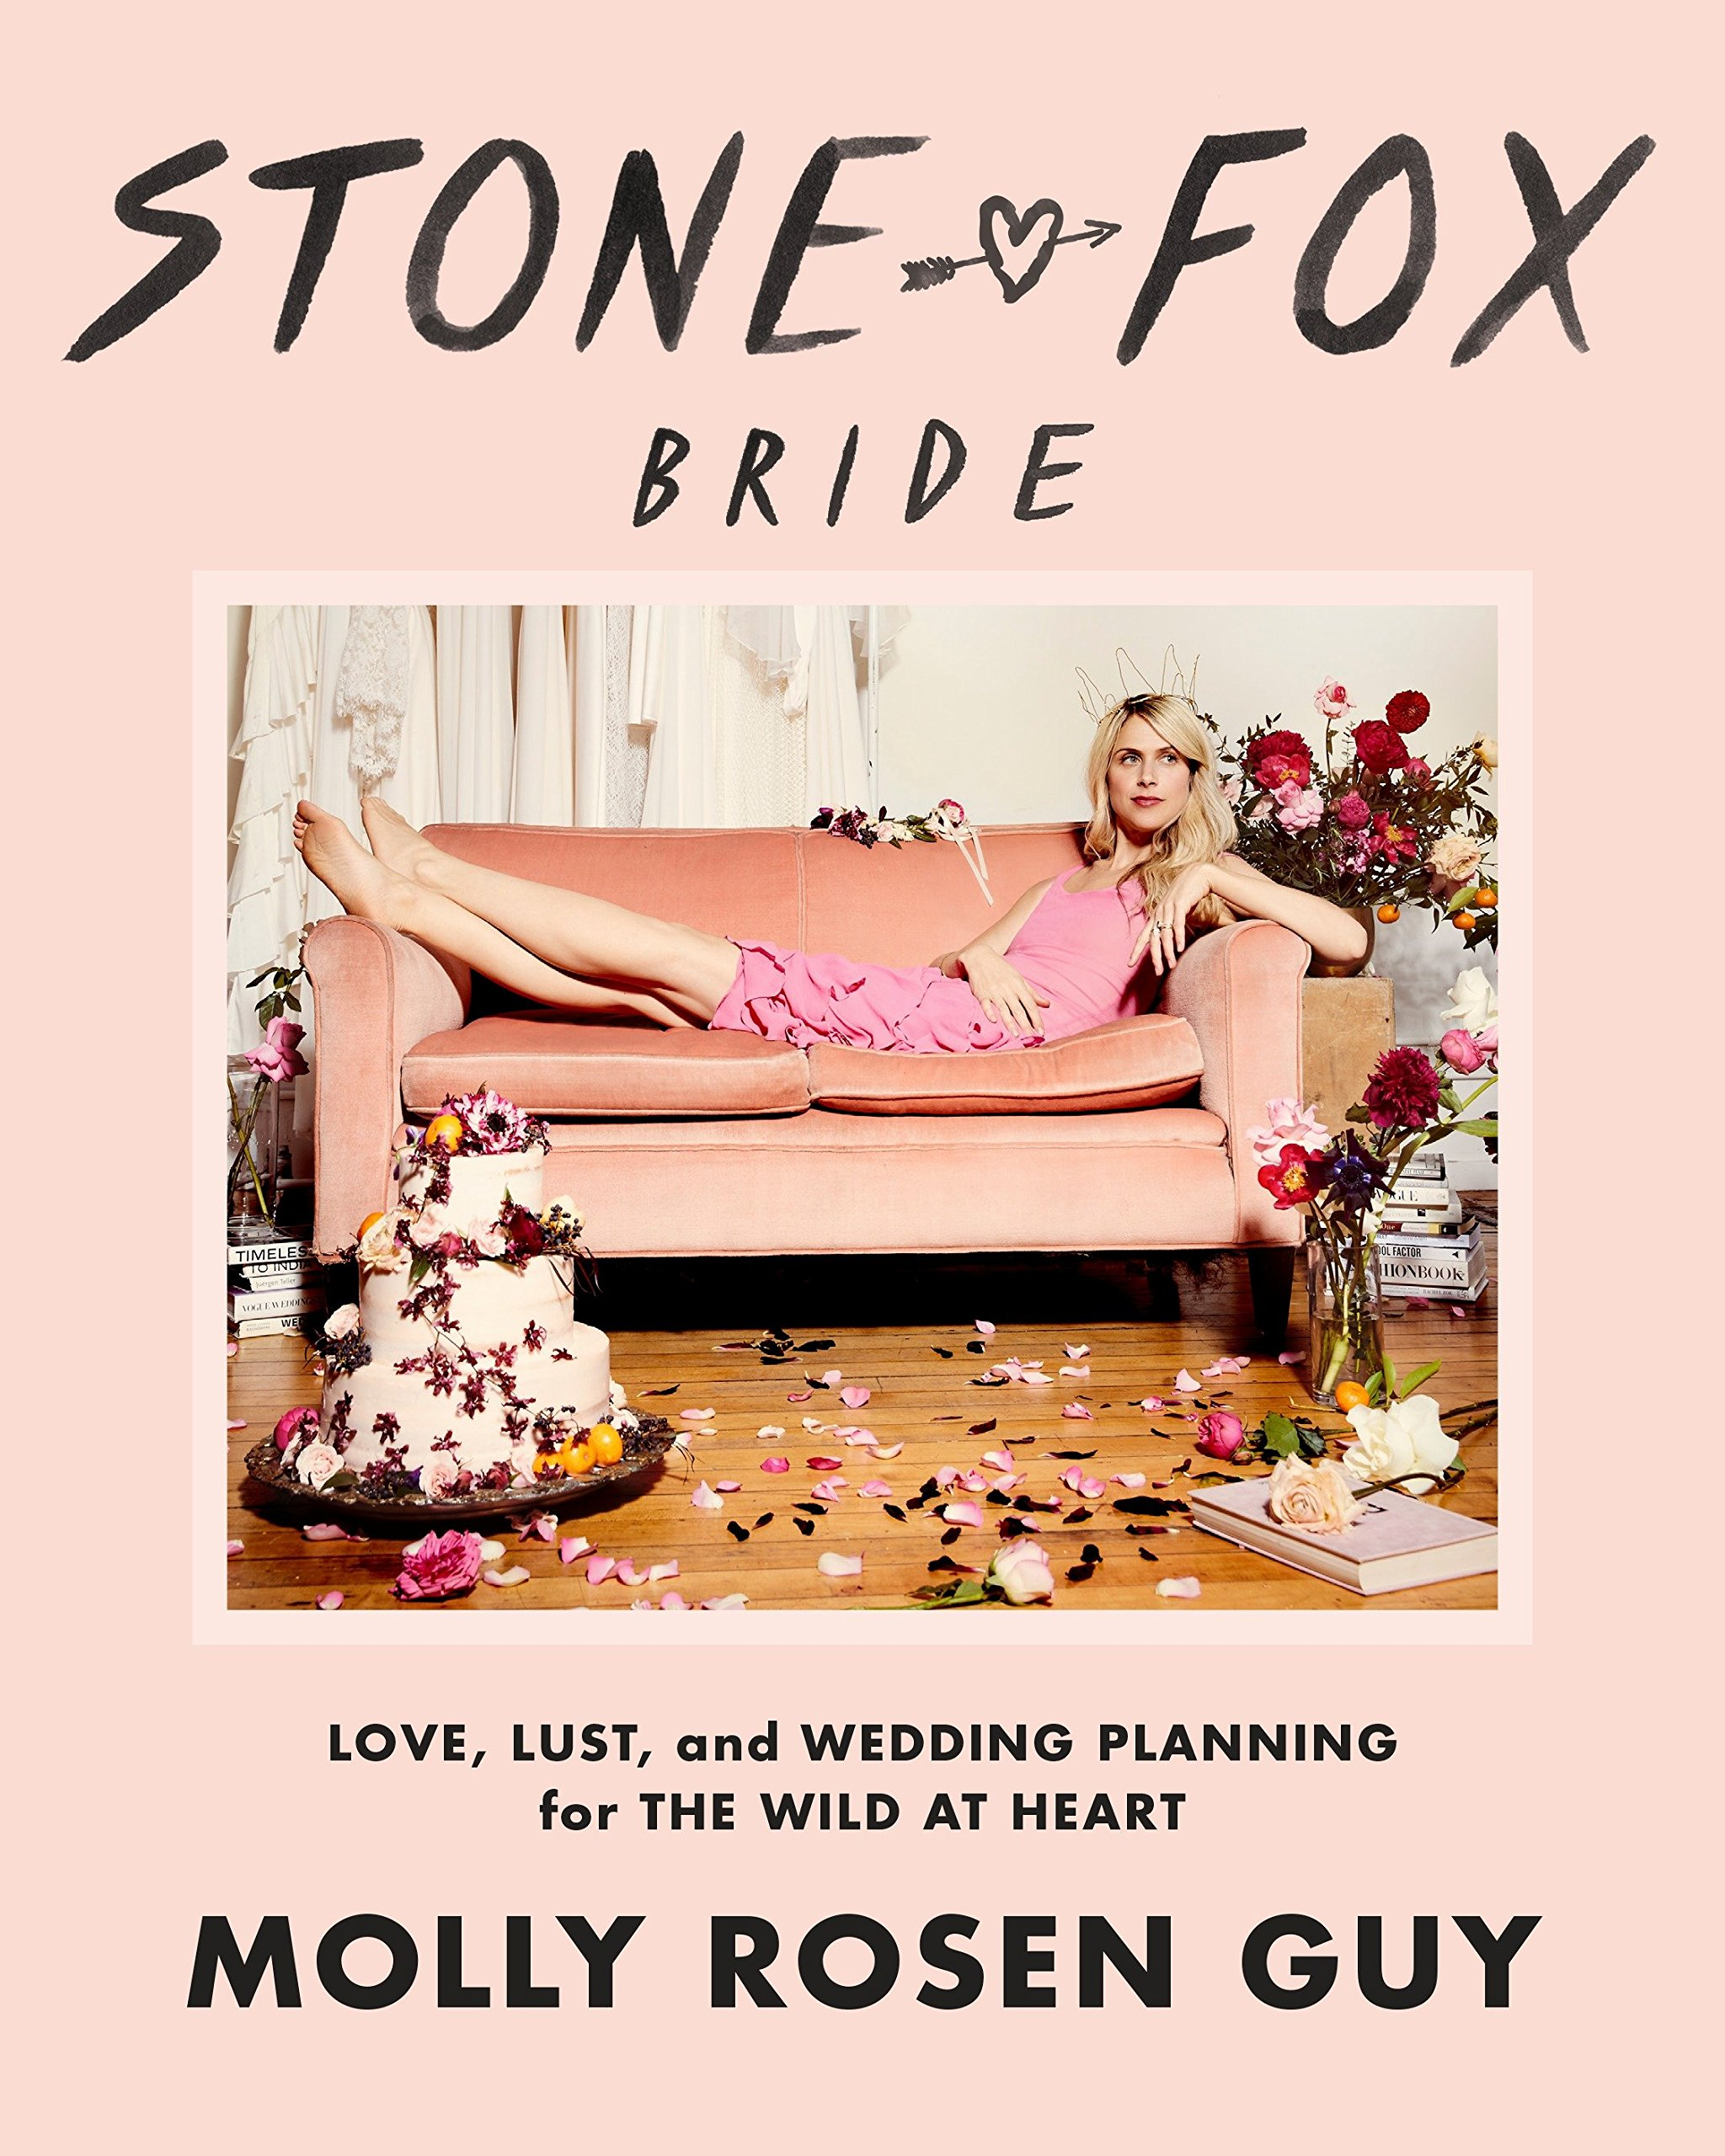 Stone Fox Bride: Love, Lust, and Wedding Planning for the Wild at Heart